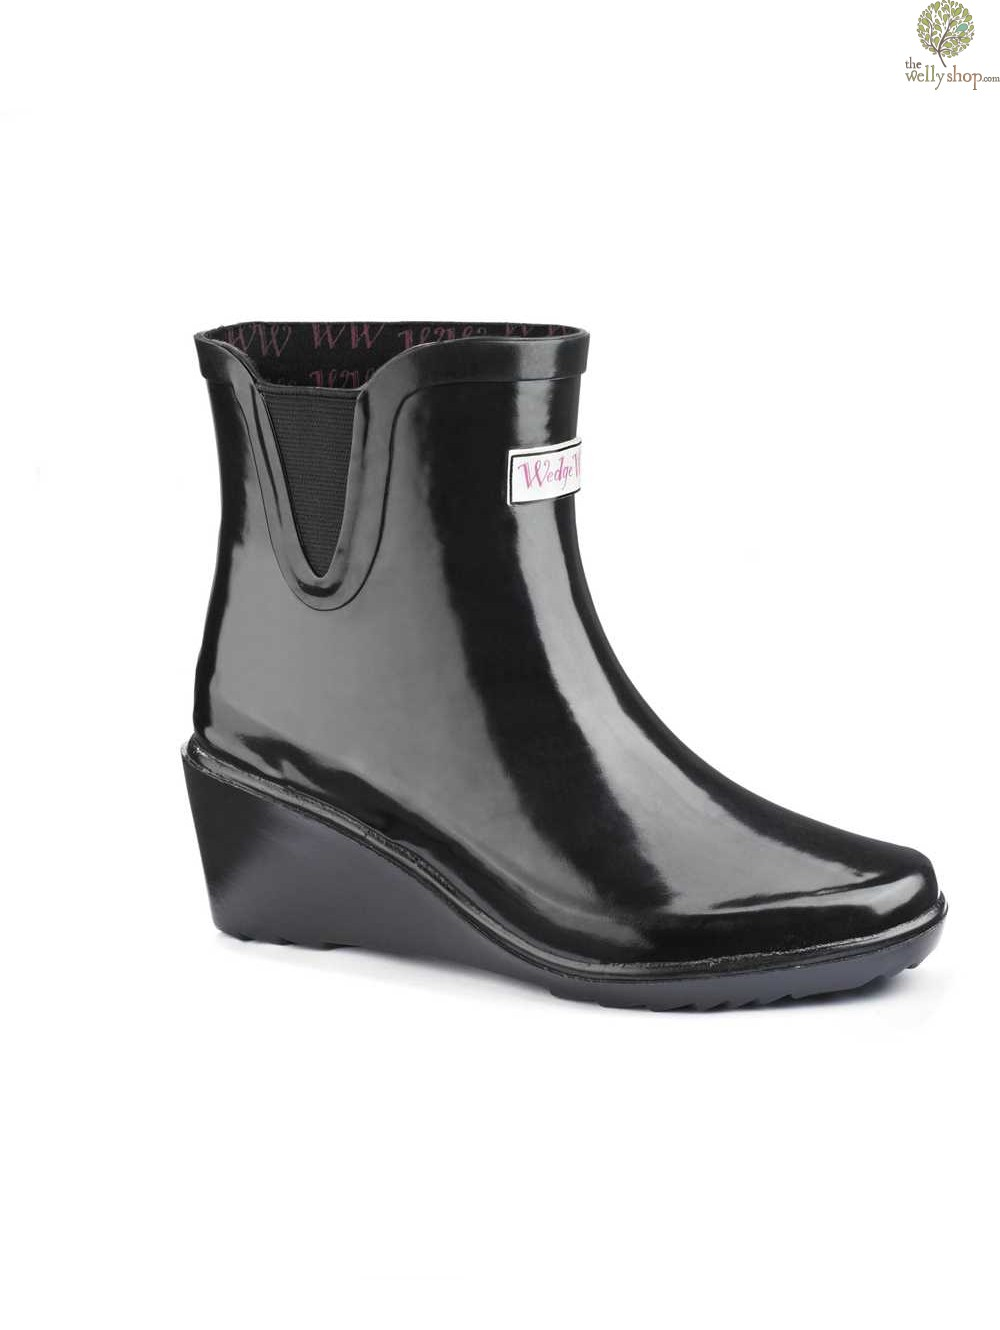 87fb02ba7f8 Wedge Welly Legend Chelsea Ankle Boots